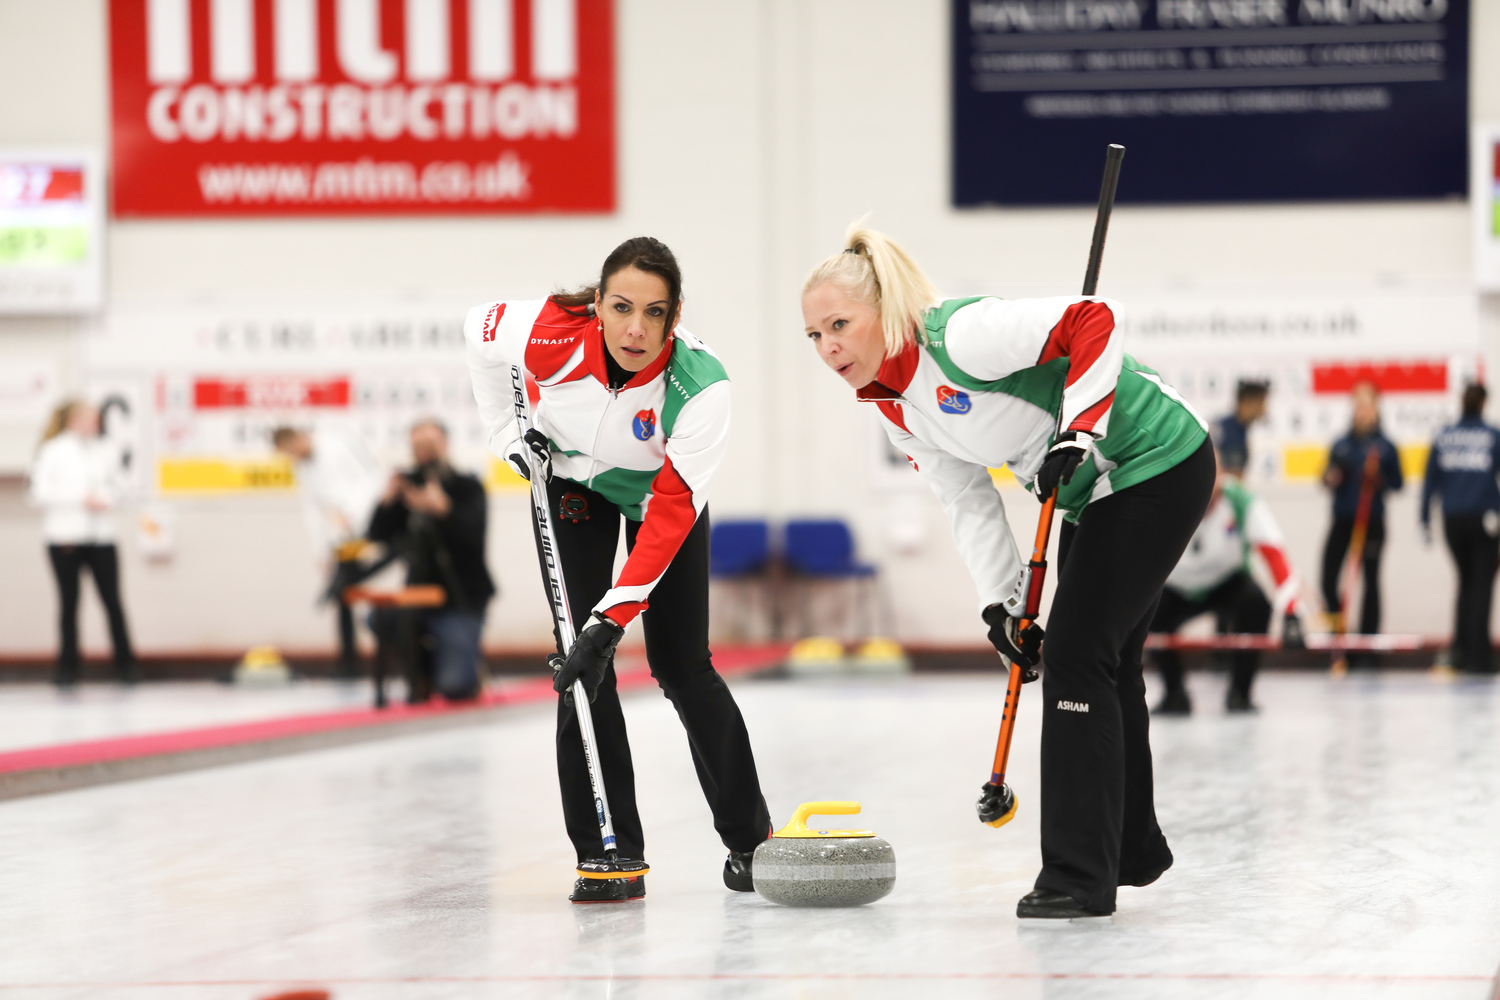 First world mixed quarter-final teams set after opening last-16 round - World Curling Federation